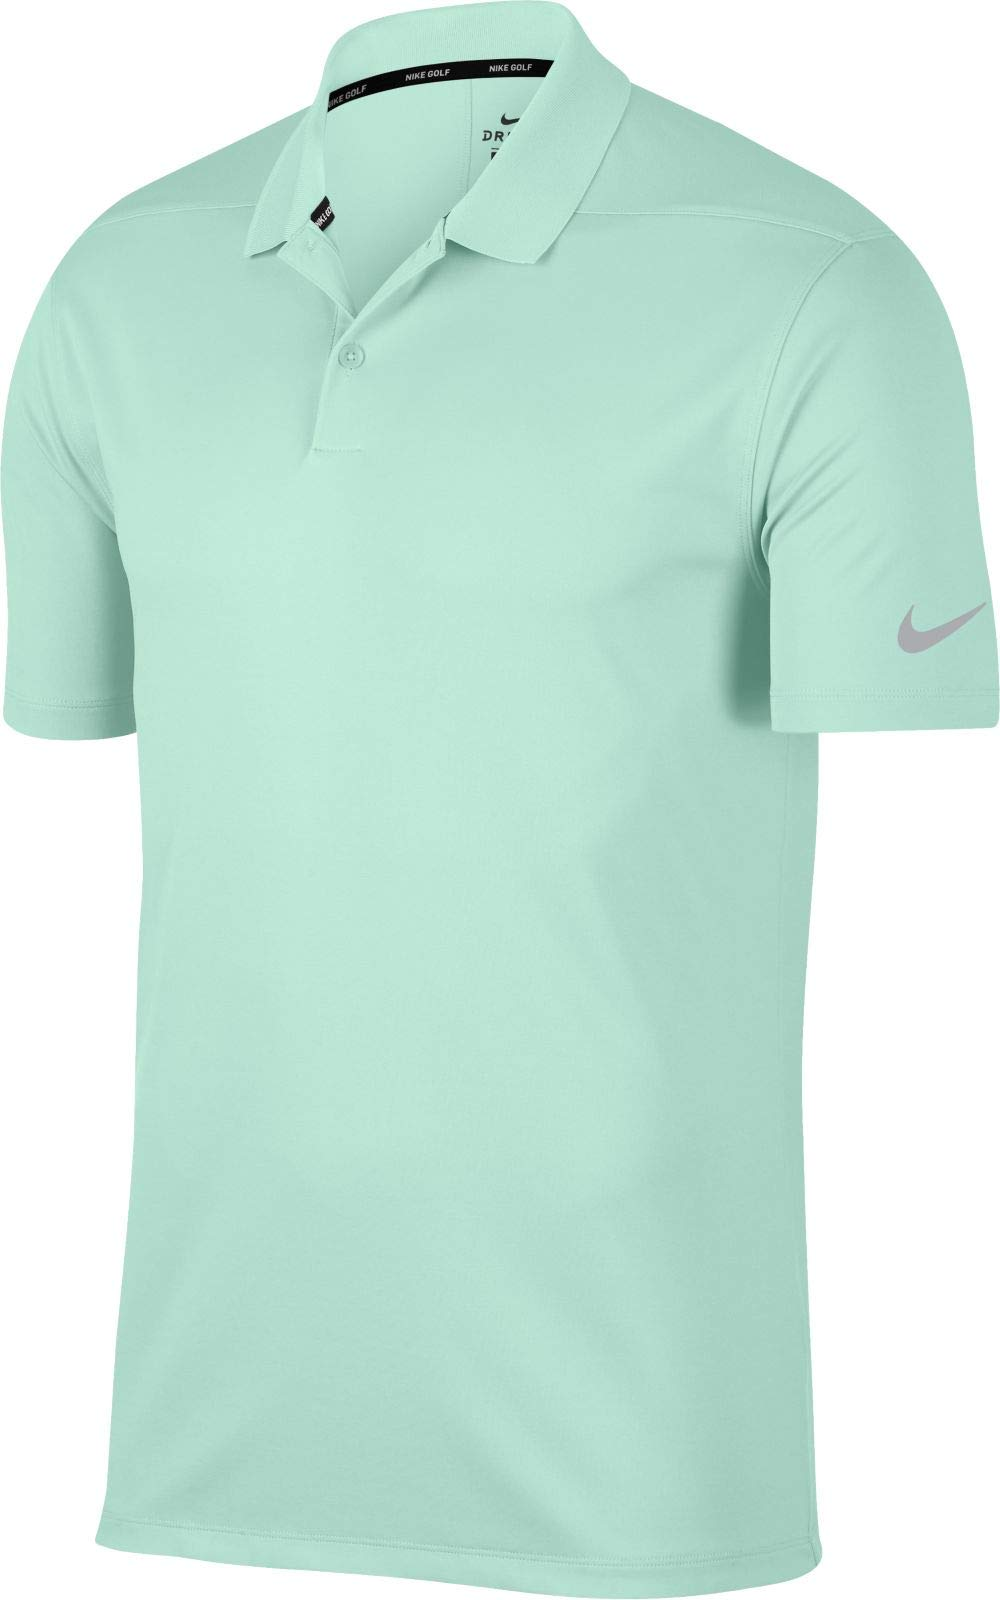 NIKE Men's Dry Victory Solid Golf Polo (Igloo/Flight Silver, Small)